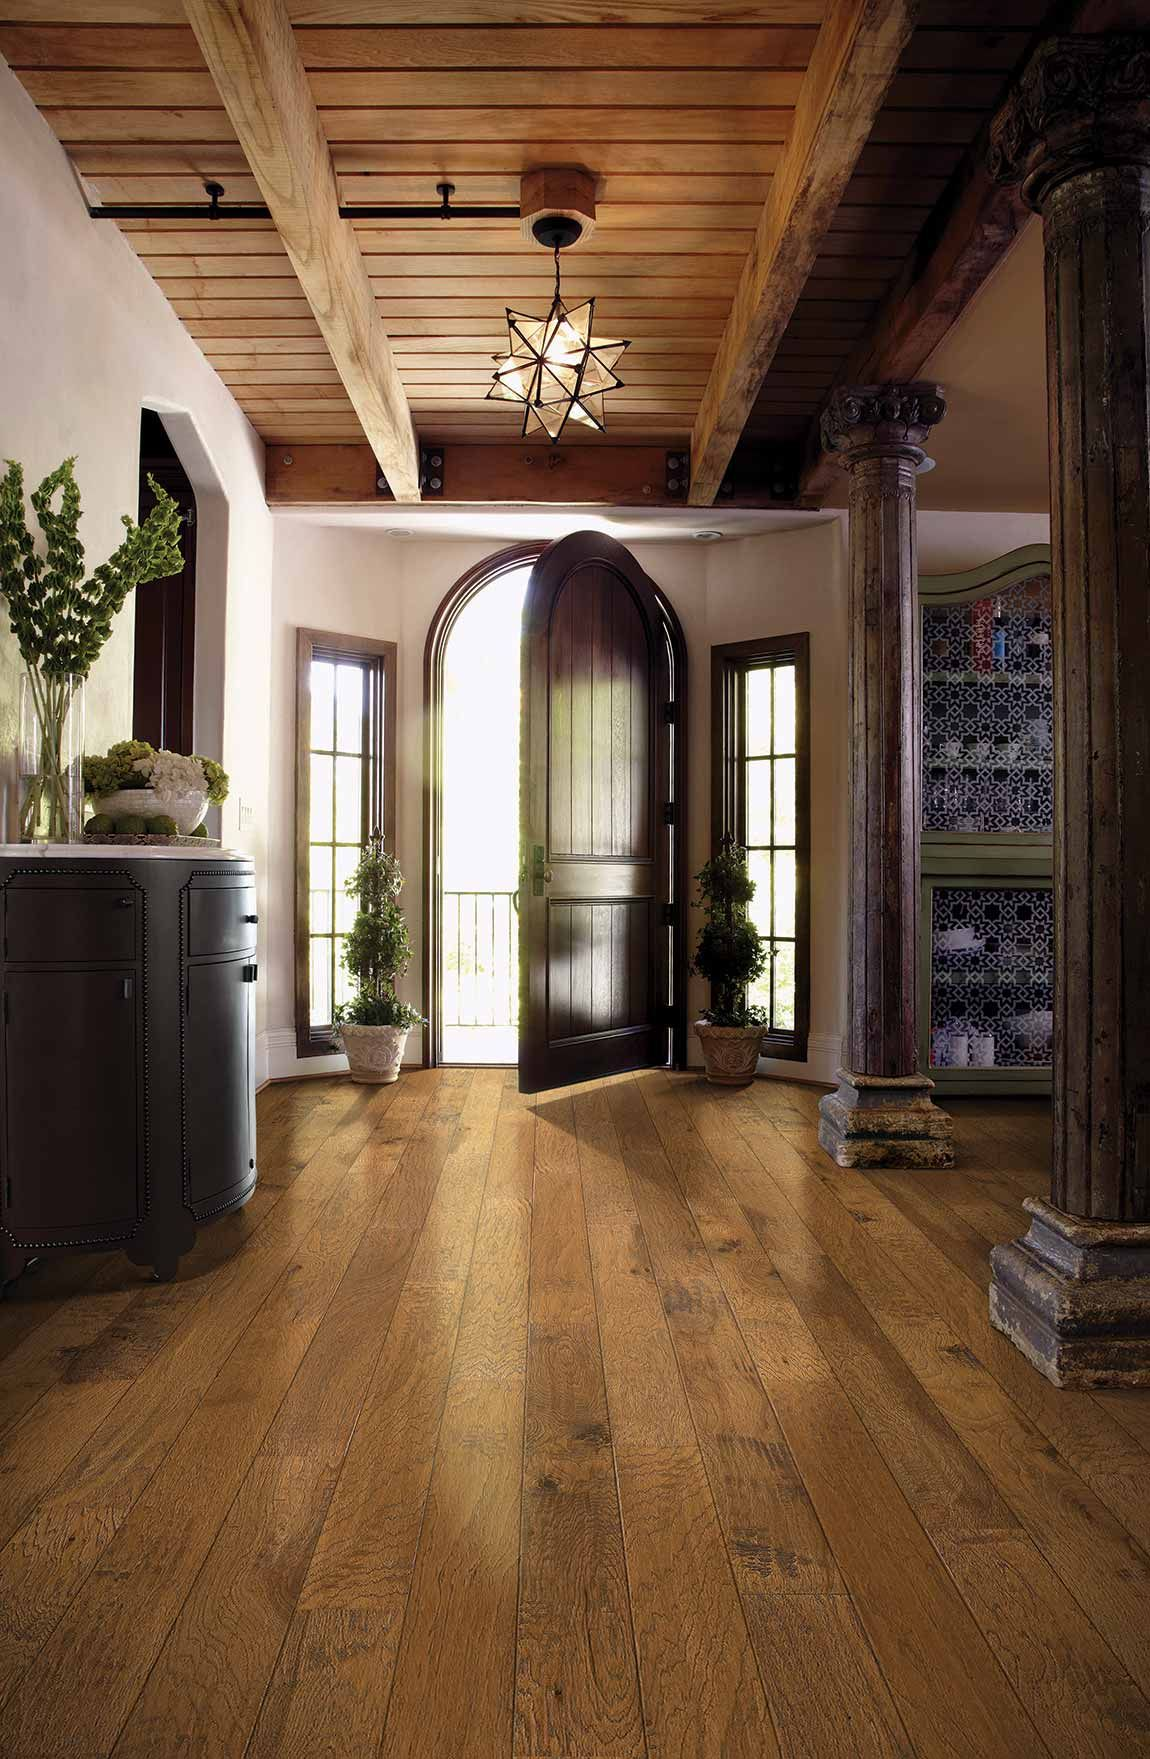 To Give A Large Scale Entryway A Cozy Farmhouse Feel We Recommend Installing Wide Plank Floors In Wood Beam Ceiling Reclaimed Wood Beams Ceiling Tuscan Design